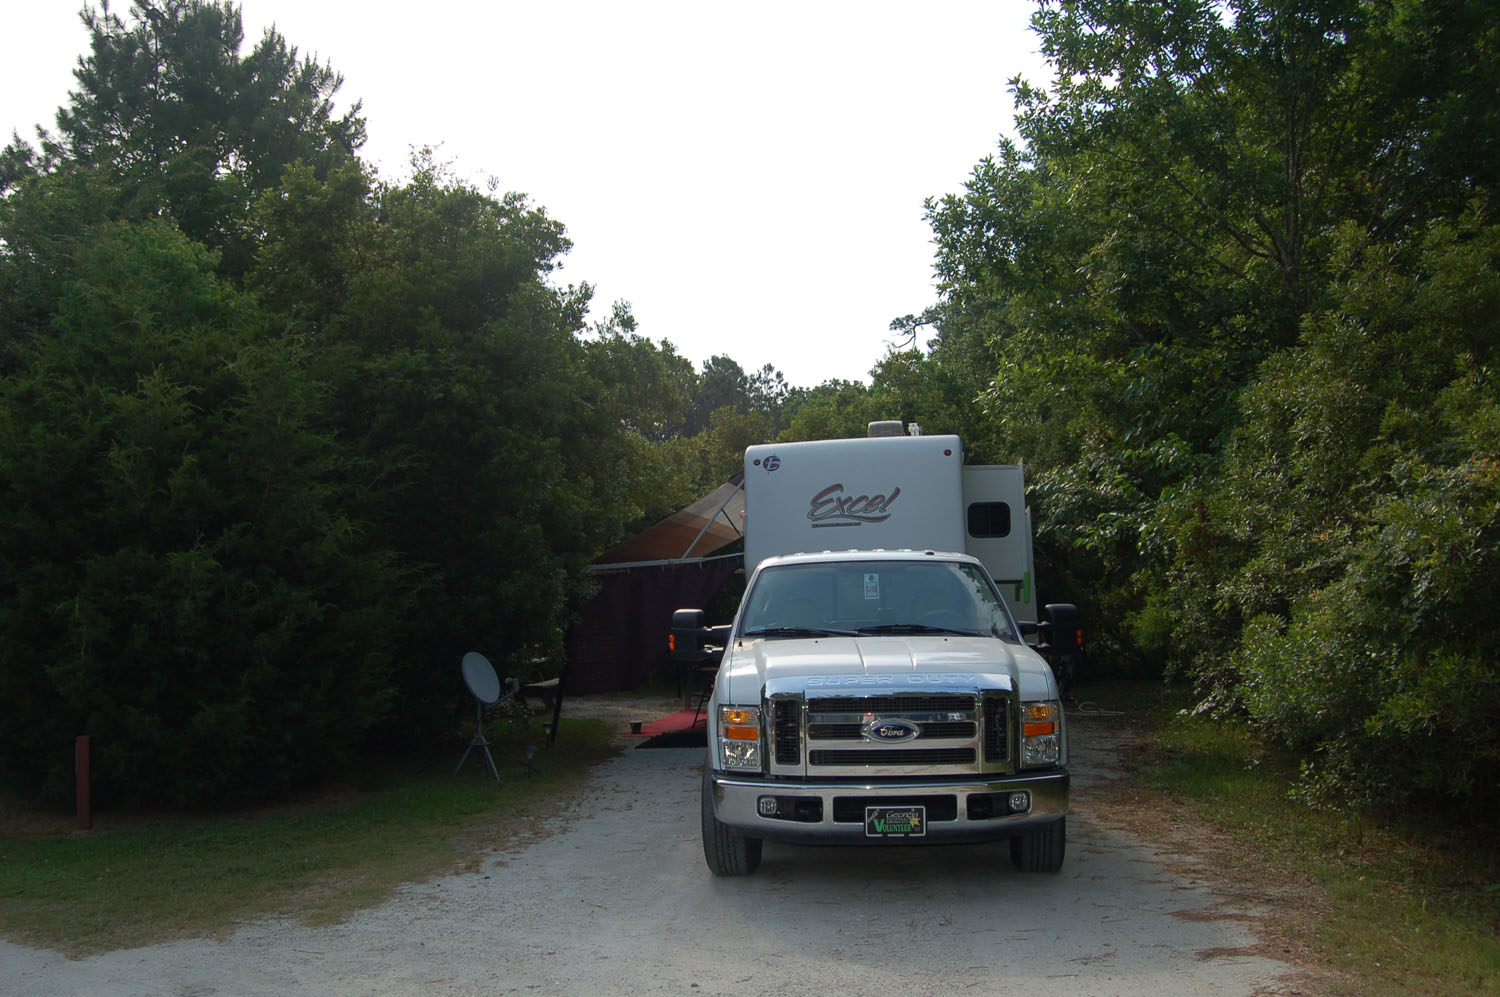 Image of campsite #4 at James Island County Park